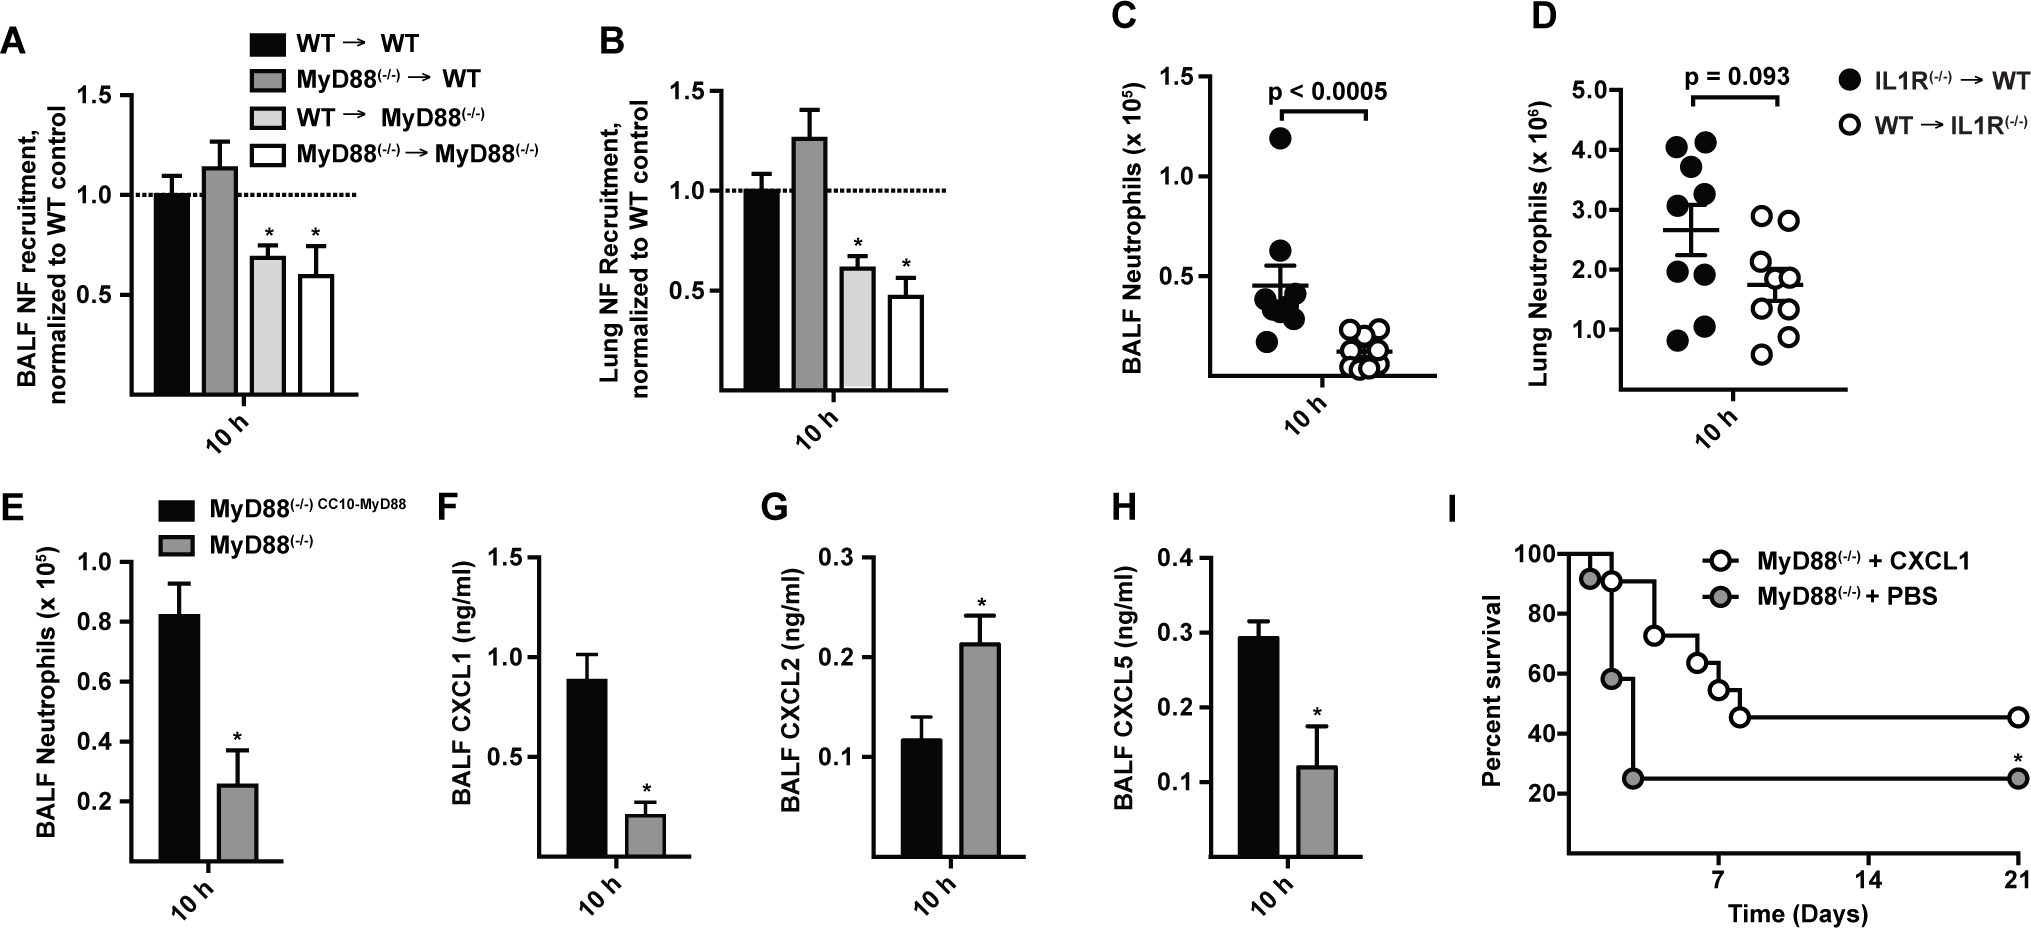 CXCL1 is controlled by MyD88 in lung epithelial cells and prolongs survival in MyD88<sup>(−/−)</sup> mice following <i>A. fumigatus</i> challenge.